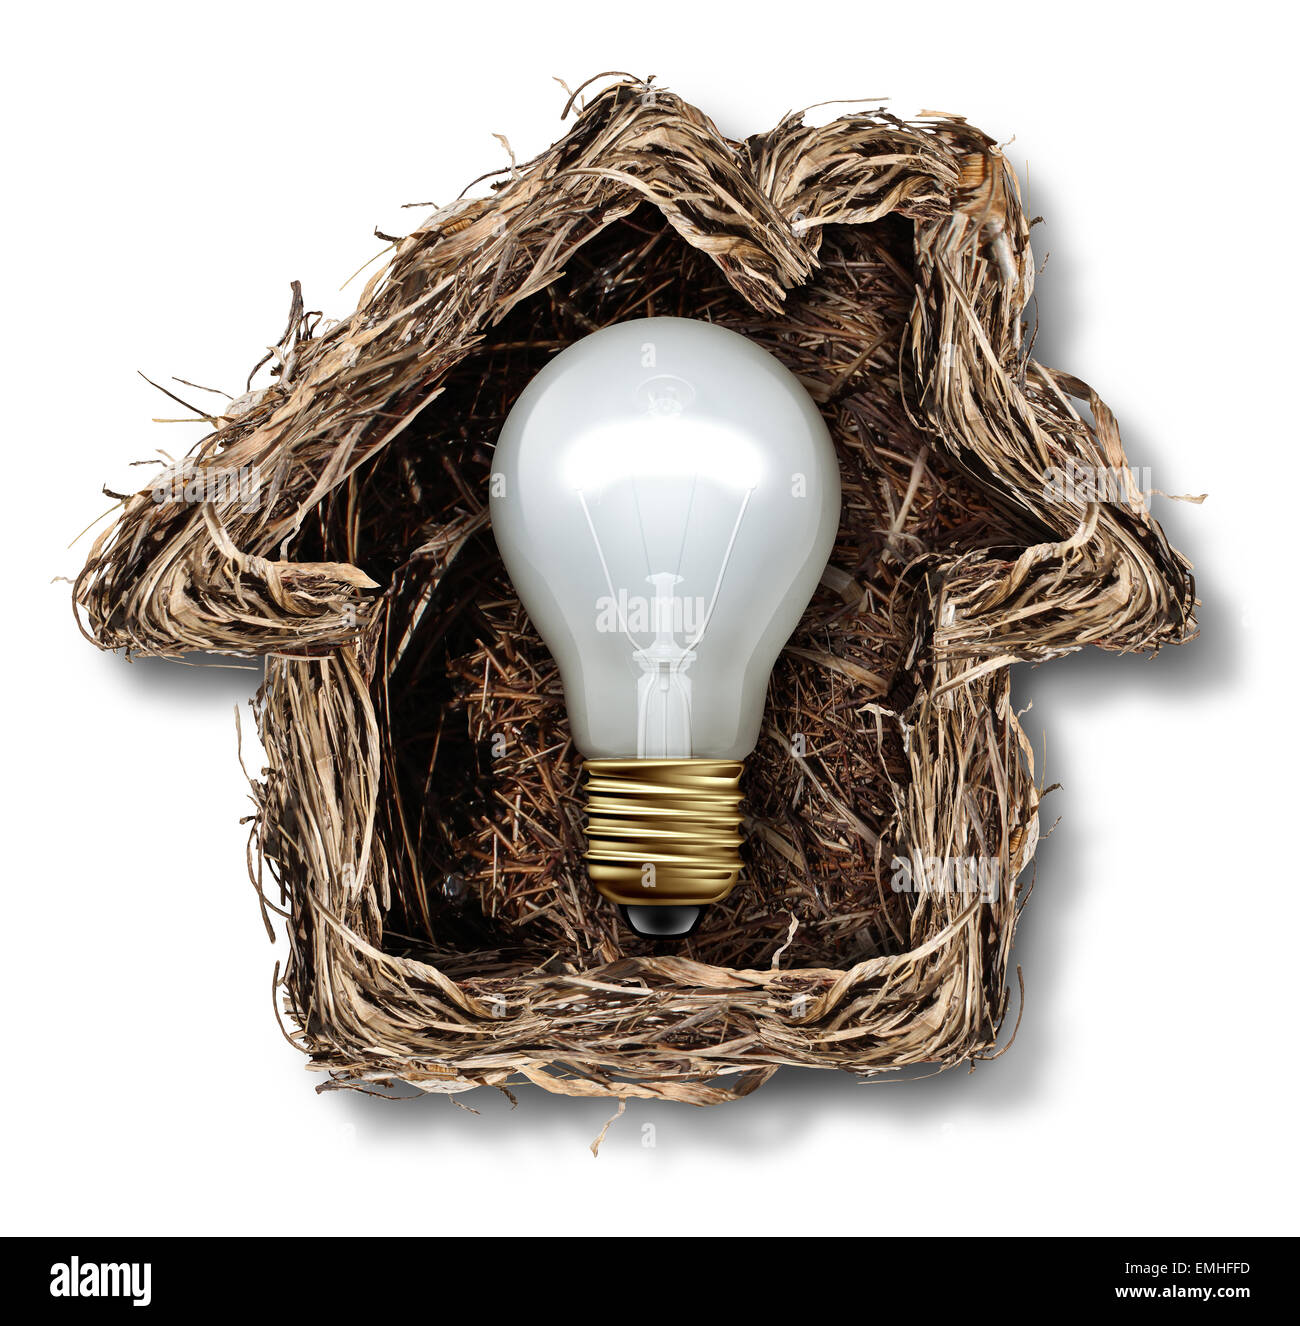 Home ideas and house solution symbol as a bird nest shaped as a family residence as a metaphor for real estate thinking - Stock Image